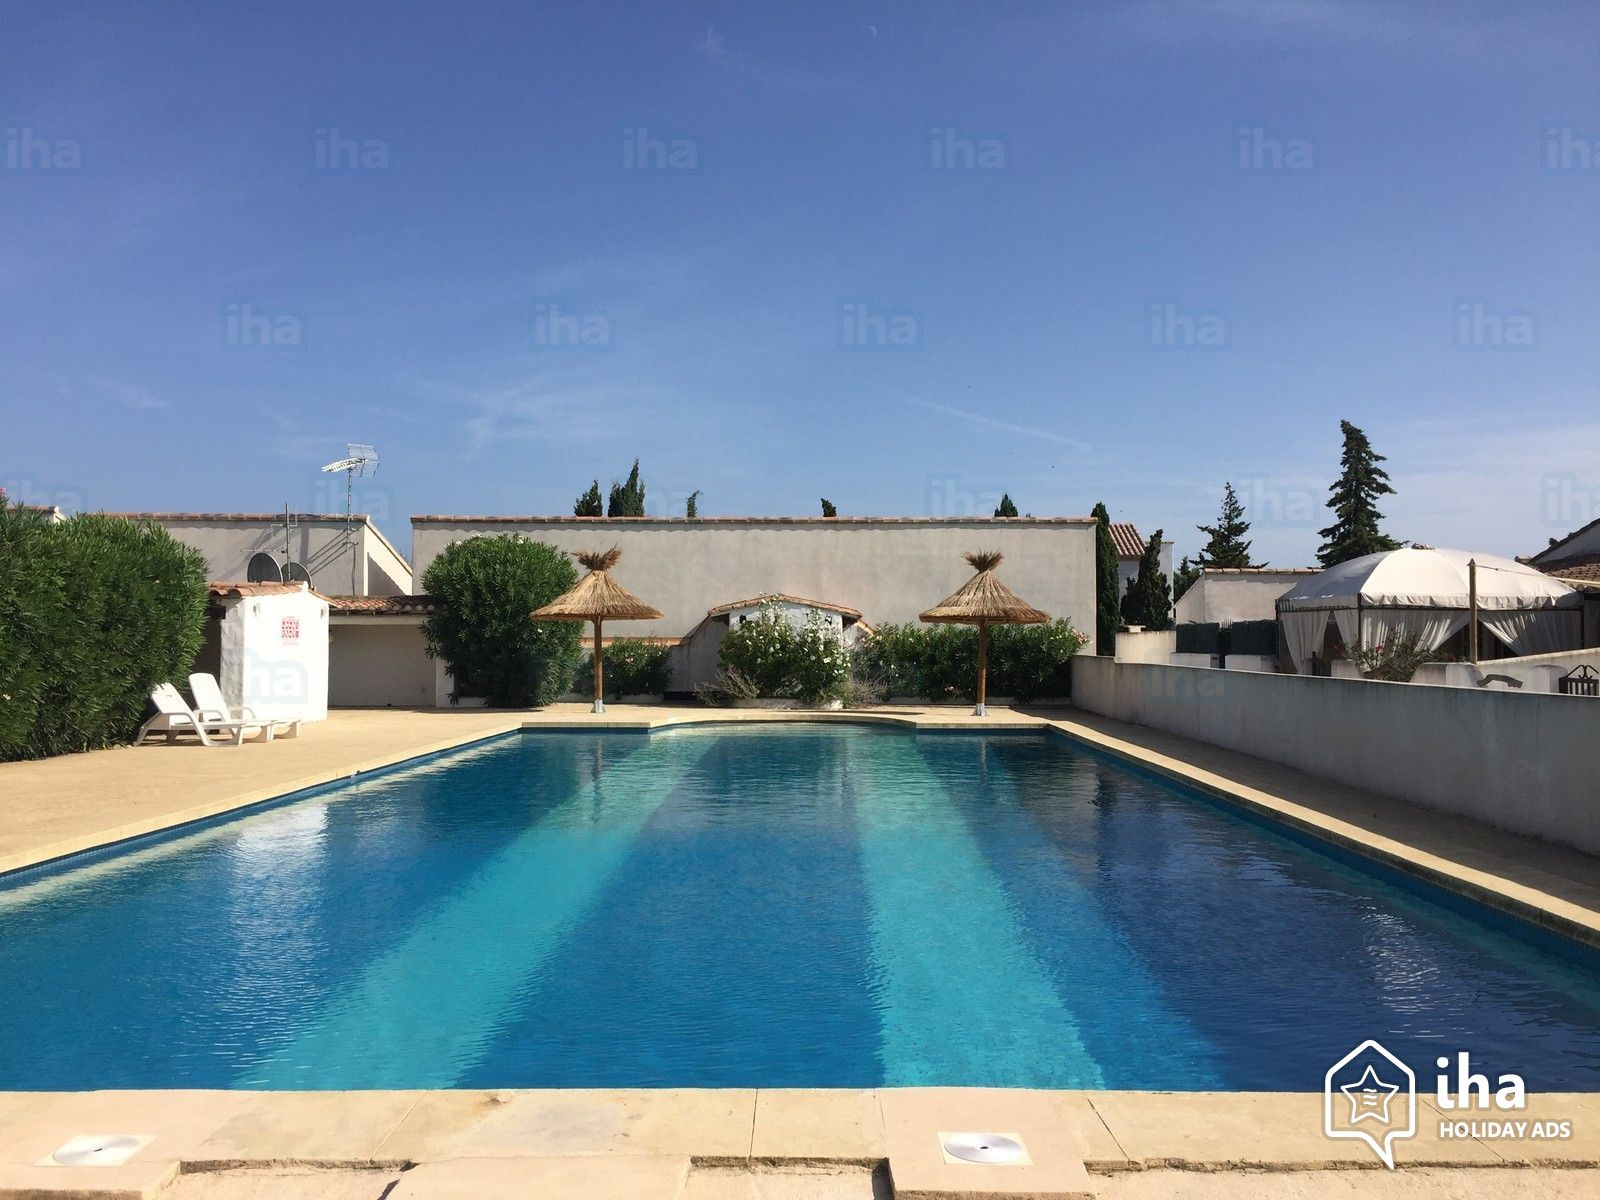 2 Bedrooms Flat-Apartments For Rent From 4 To 5 People tout Piscine Fos Sur Mer